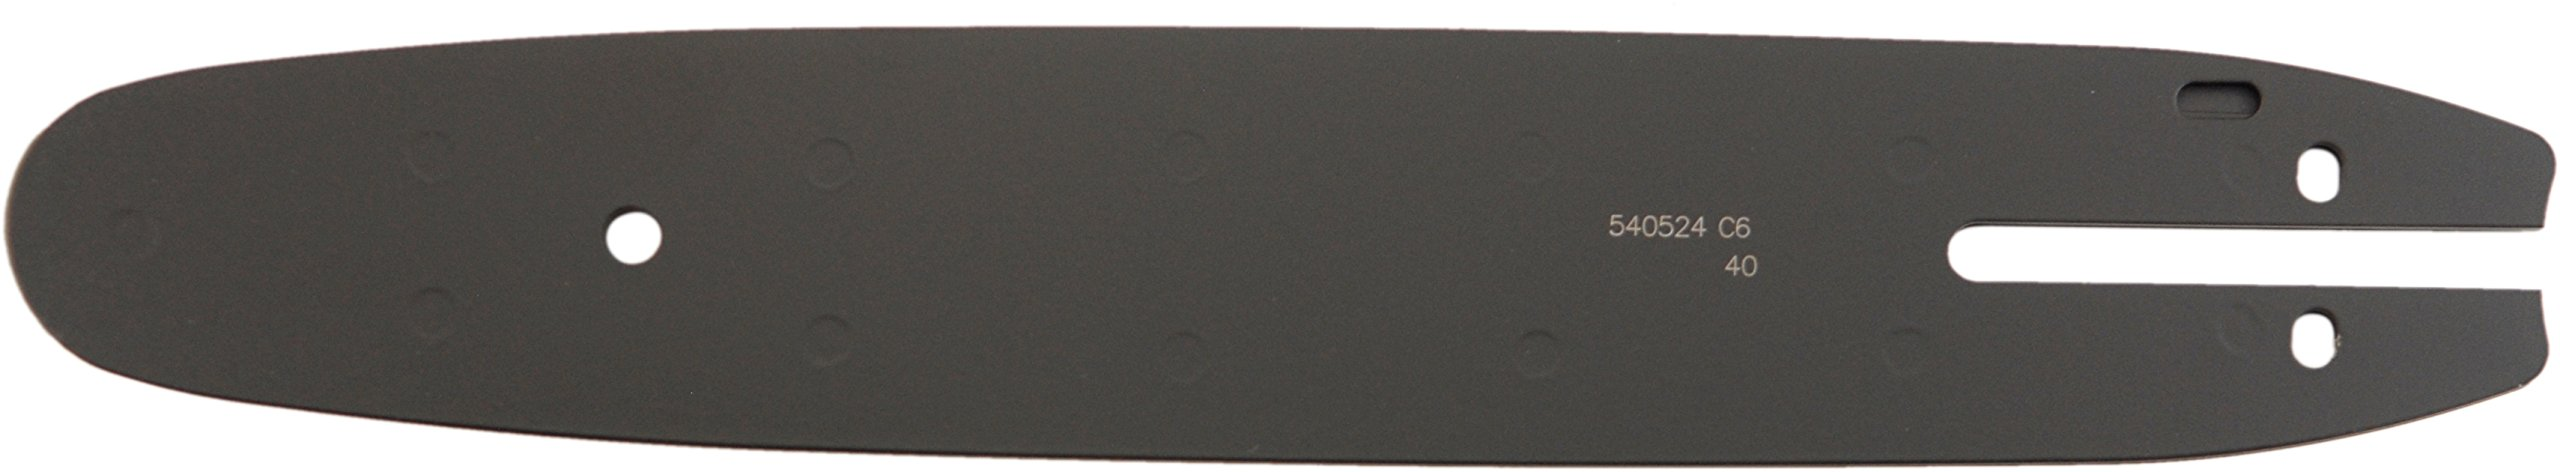 Oregon 540524 Briggs and Stratton 10'' Chain Saw Replacement Bar, Black by Oregon